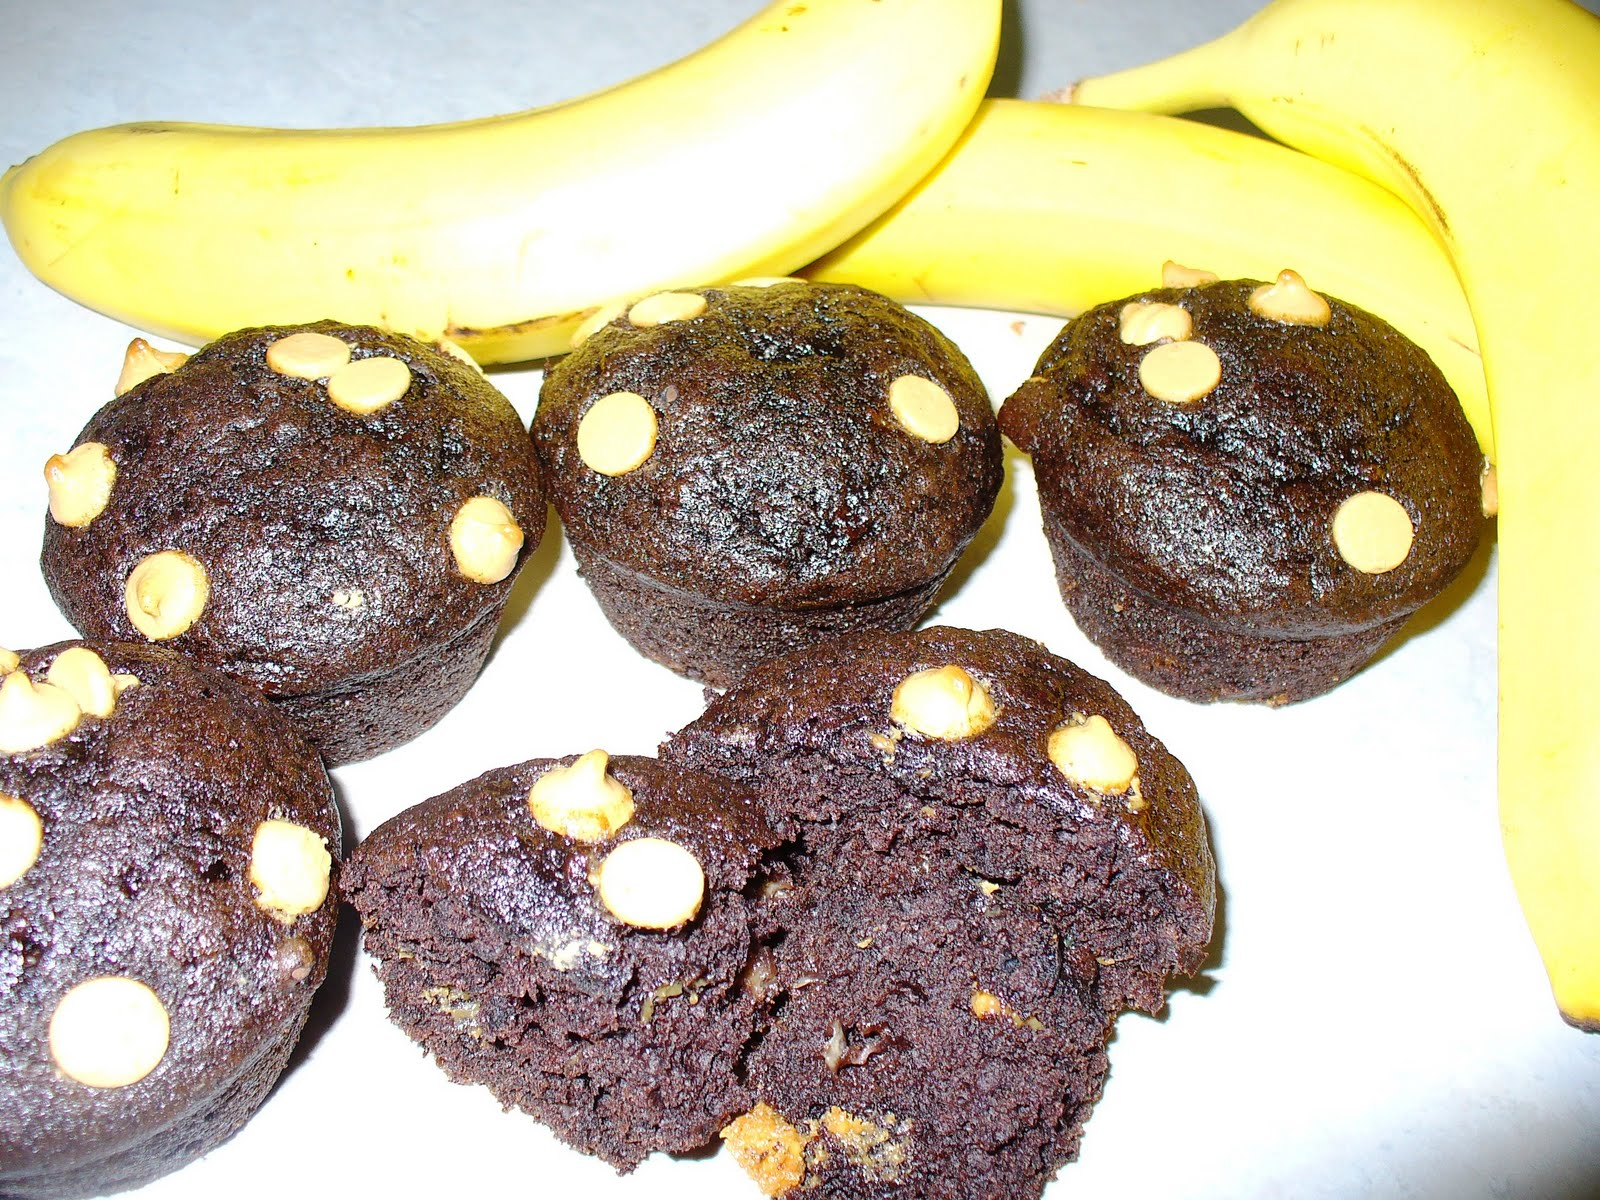 ... Sweetest Delights: Chocolate Banana Muffins with Peanut Butter Chips